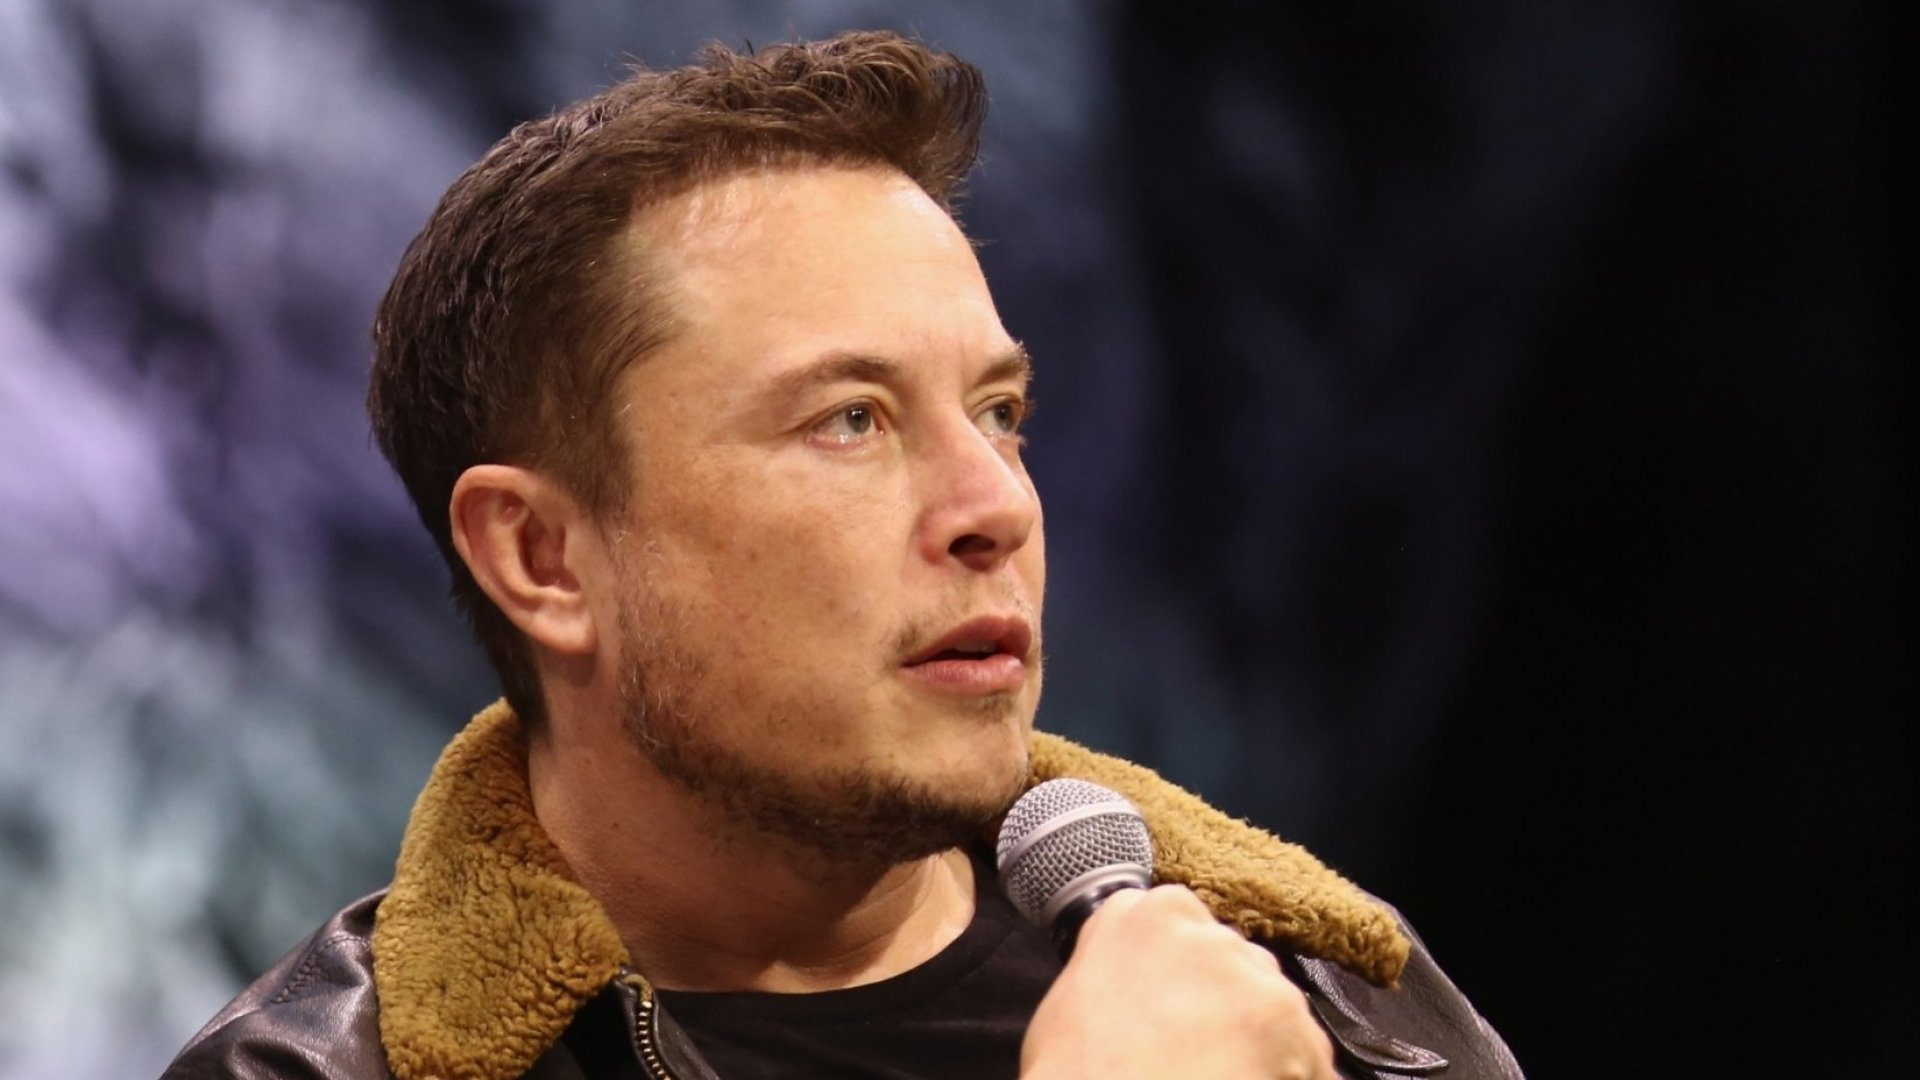 Elon Musk Reveals His Remarkably Powerful Productivity Tips In a Letter to Employees